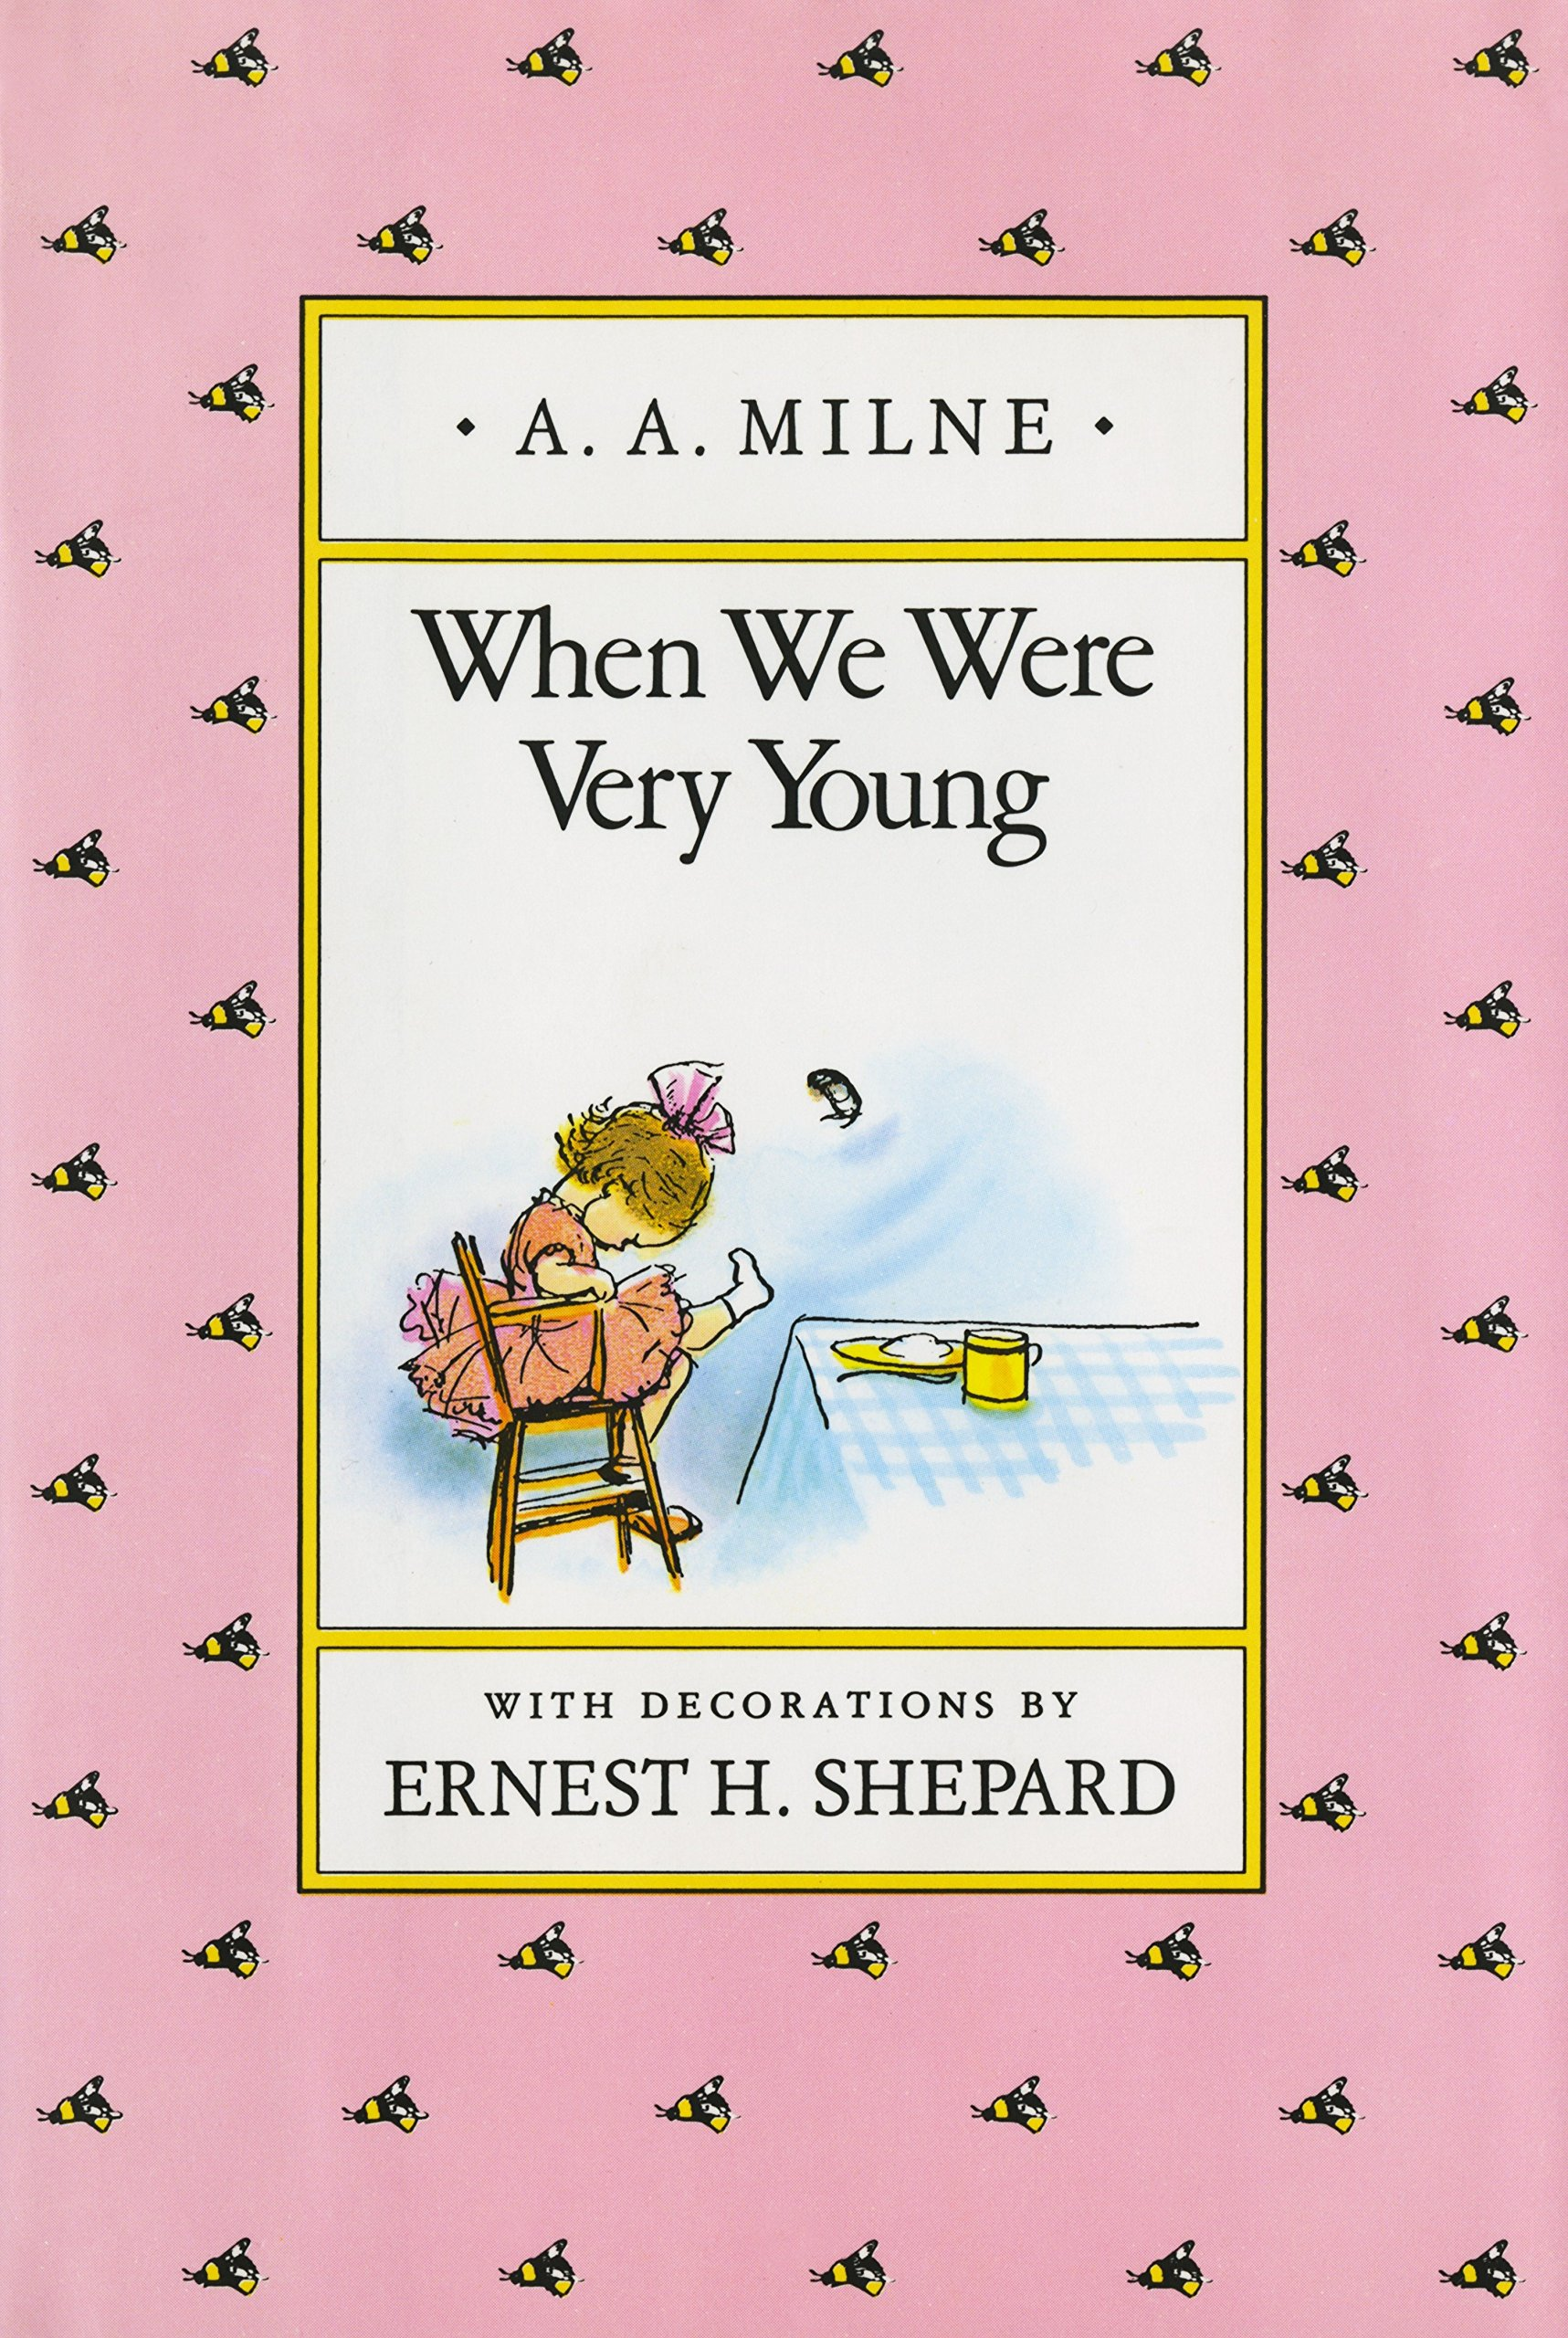 When We Were Very Young (Winnie-the-Pooh)